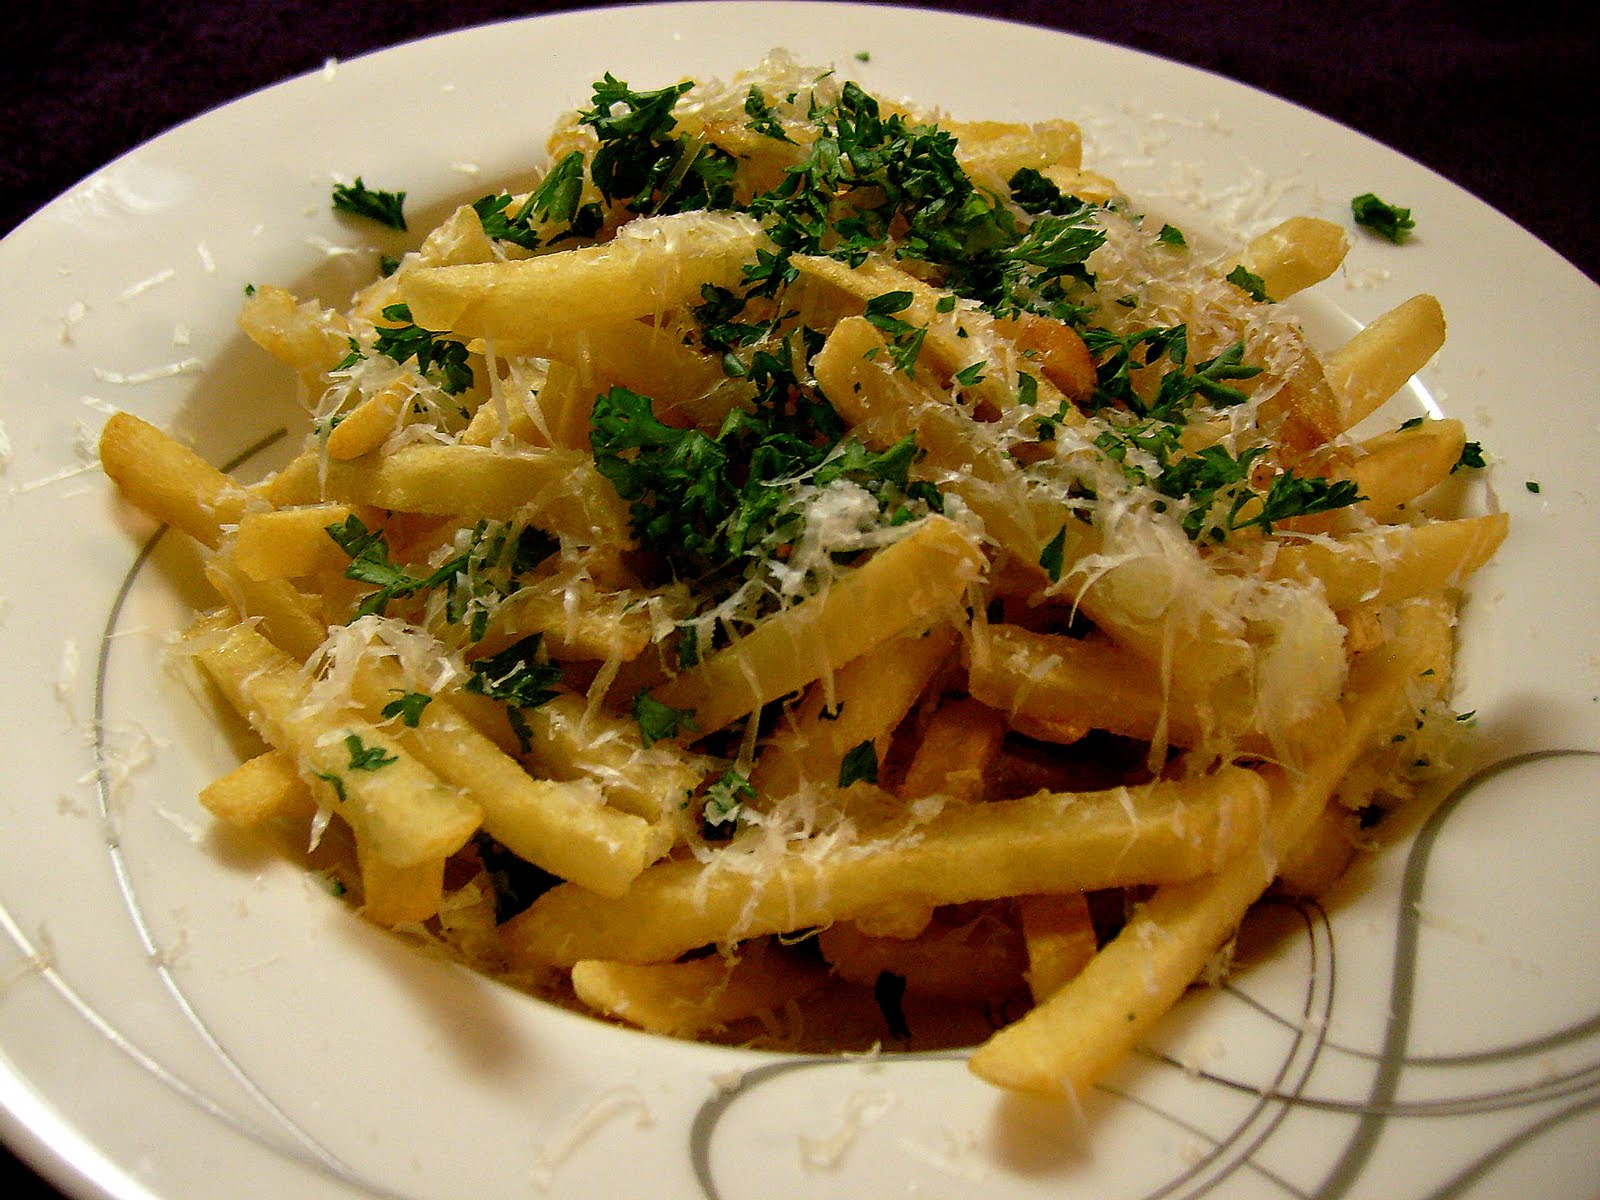 ... ' Kitchen: Pommes Frites with Truffle Oil, Parmesan, and Parsley